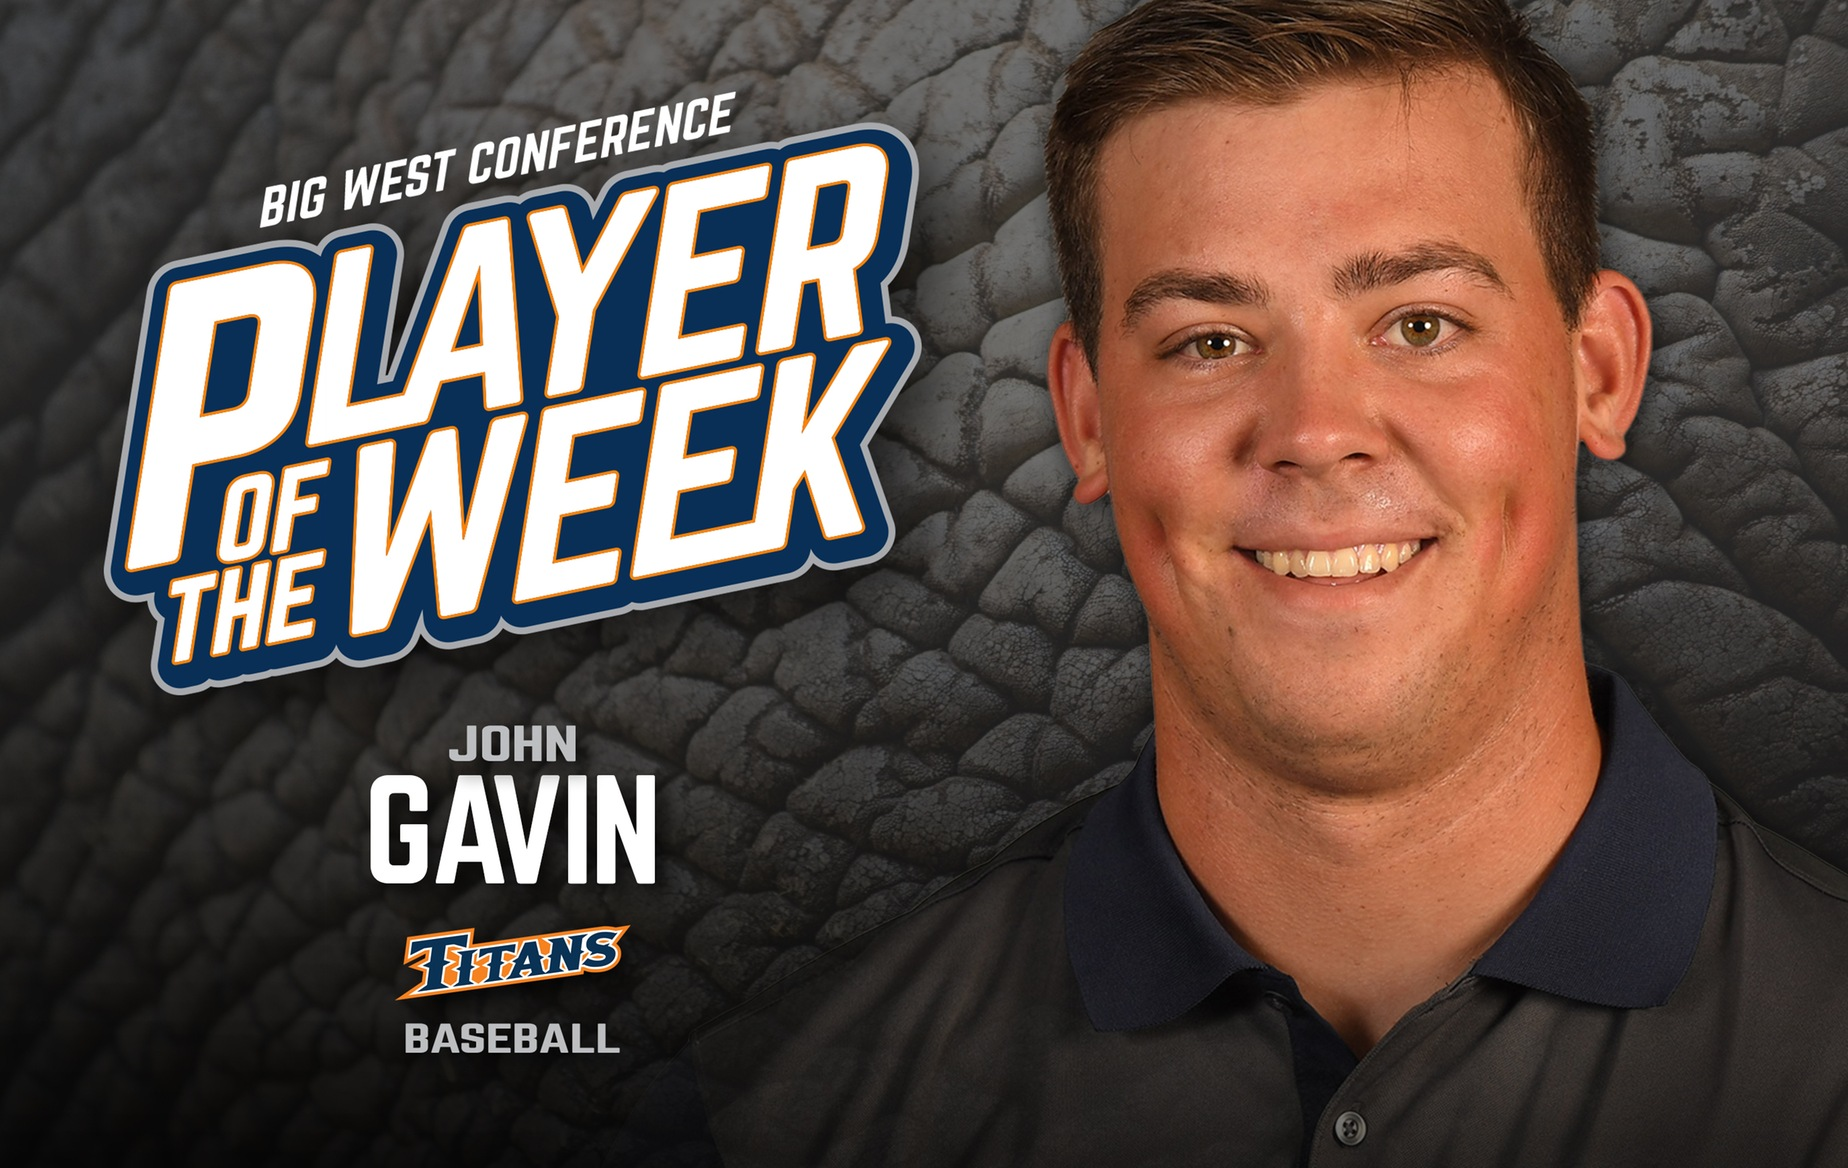 Gavin Earns Big West Pitcher of the Week Honors